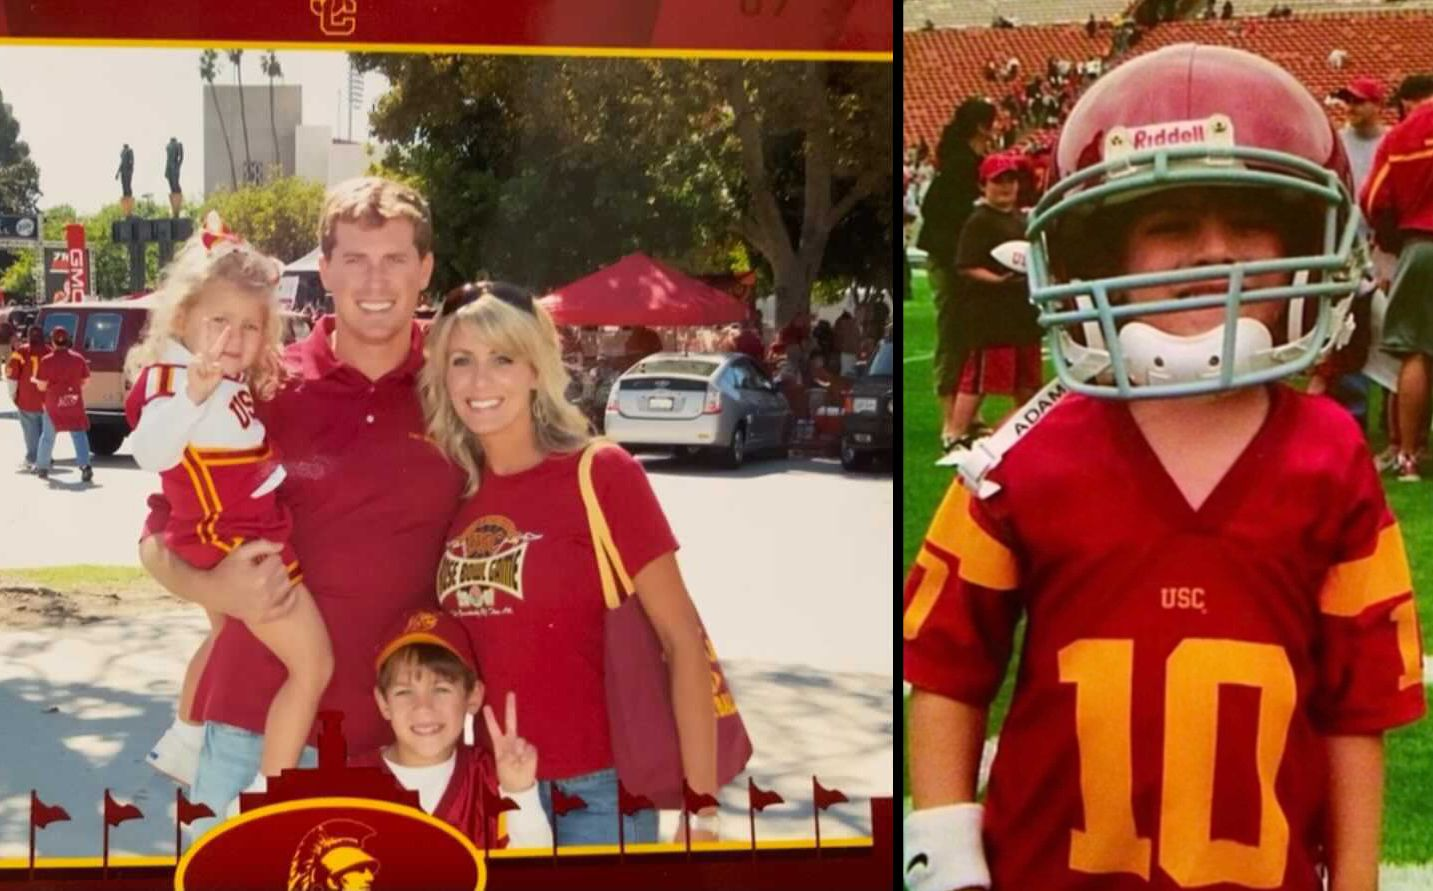 When he was younger, General Booty, and his family, went to see his uncle, John David Booty, play for the University of Southern California. General work his uncle's No. 10 jersey.  His family in the photo on the left includes sister Avery (far left), father Abram (center) and mother Amy.